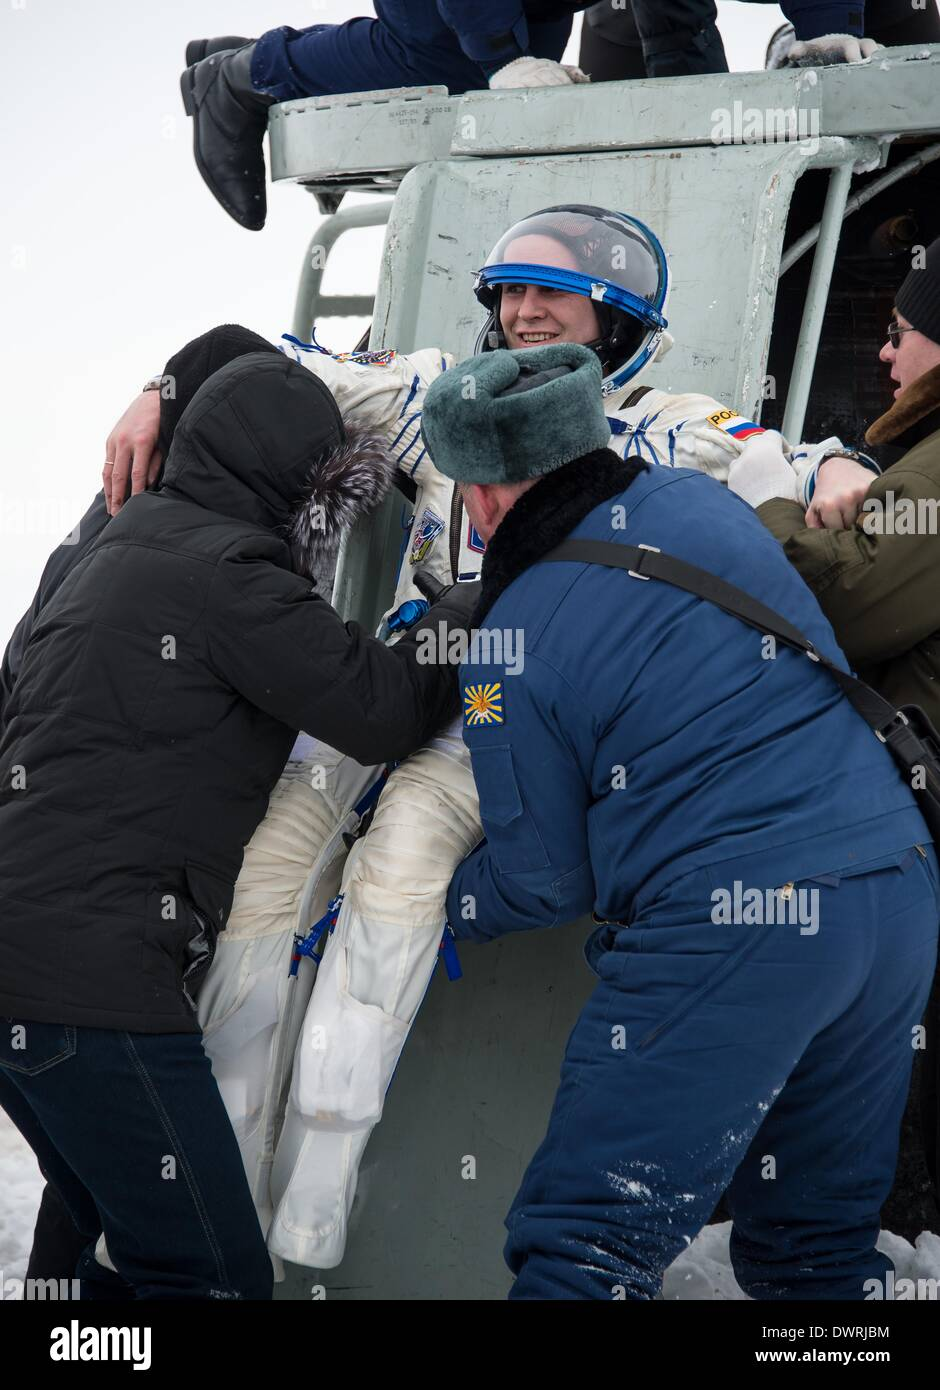 Karaganda airport, Kazakhstan. 11th March, 2014. International Space State Expedition 38 cosmonaut Sergey Ryazanskiy of the Russian Federal Space Agency is lifted out of the Soyuz Capsule after landing in a Soyuz TMA-10M spacecraft March 11, 2014 near the town of Zhezkazgan, Kazakhstan. Hopkins, Kotov and Ryazanskiy returned to Earth after five and a half months onboard the International Space Station. Credit:  Planetpix/Alamy Live News - Stock Image